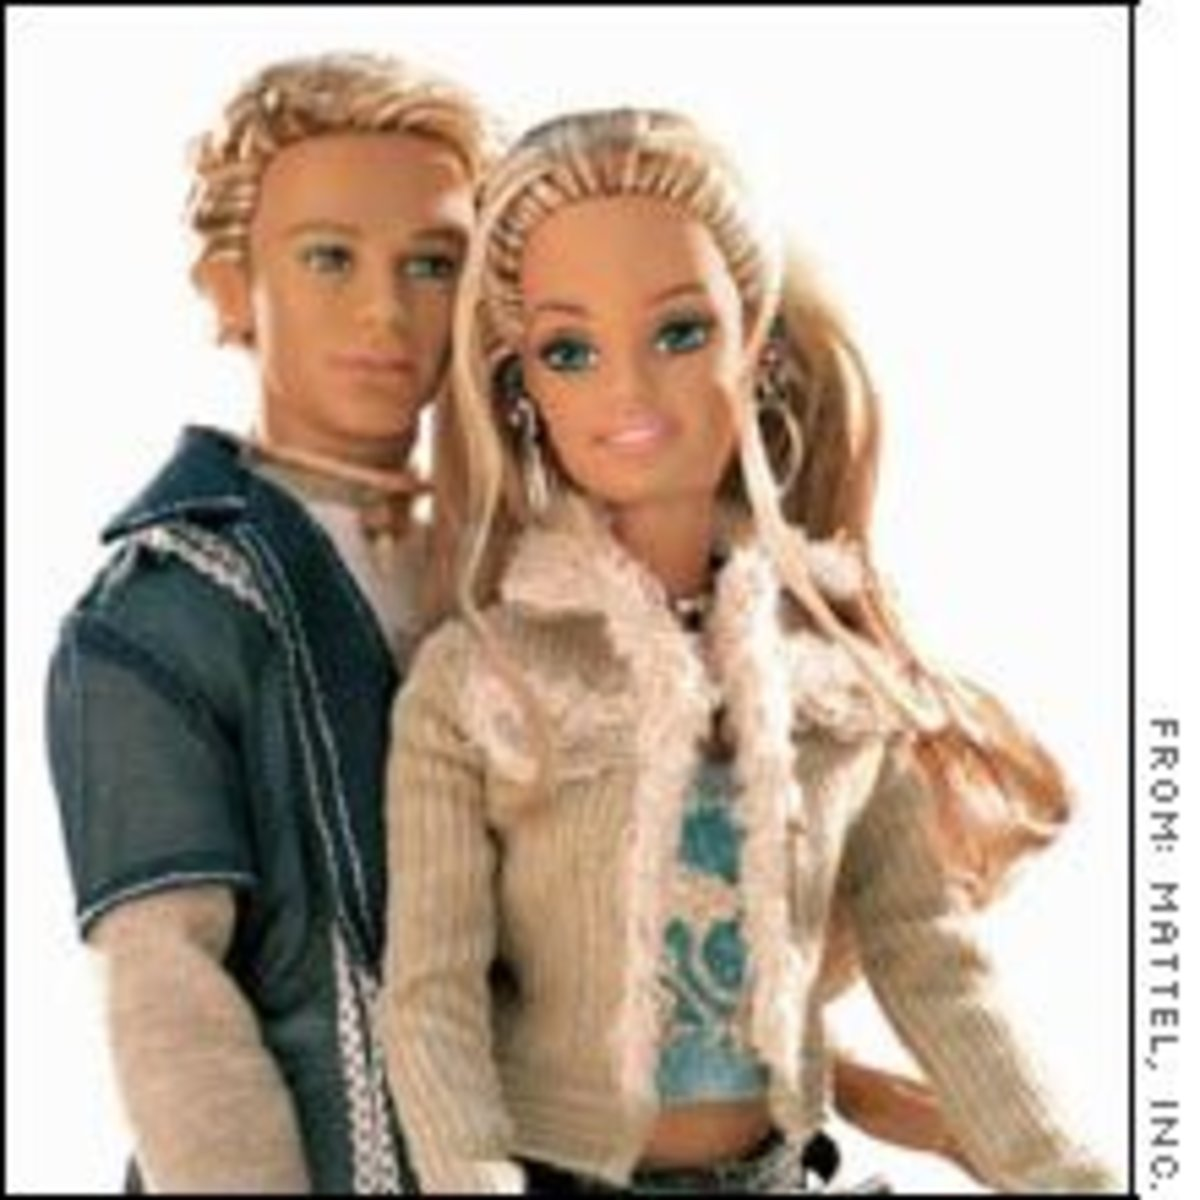 Barbie and Blaine in 2004